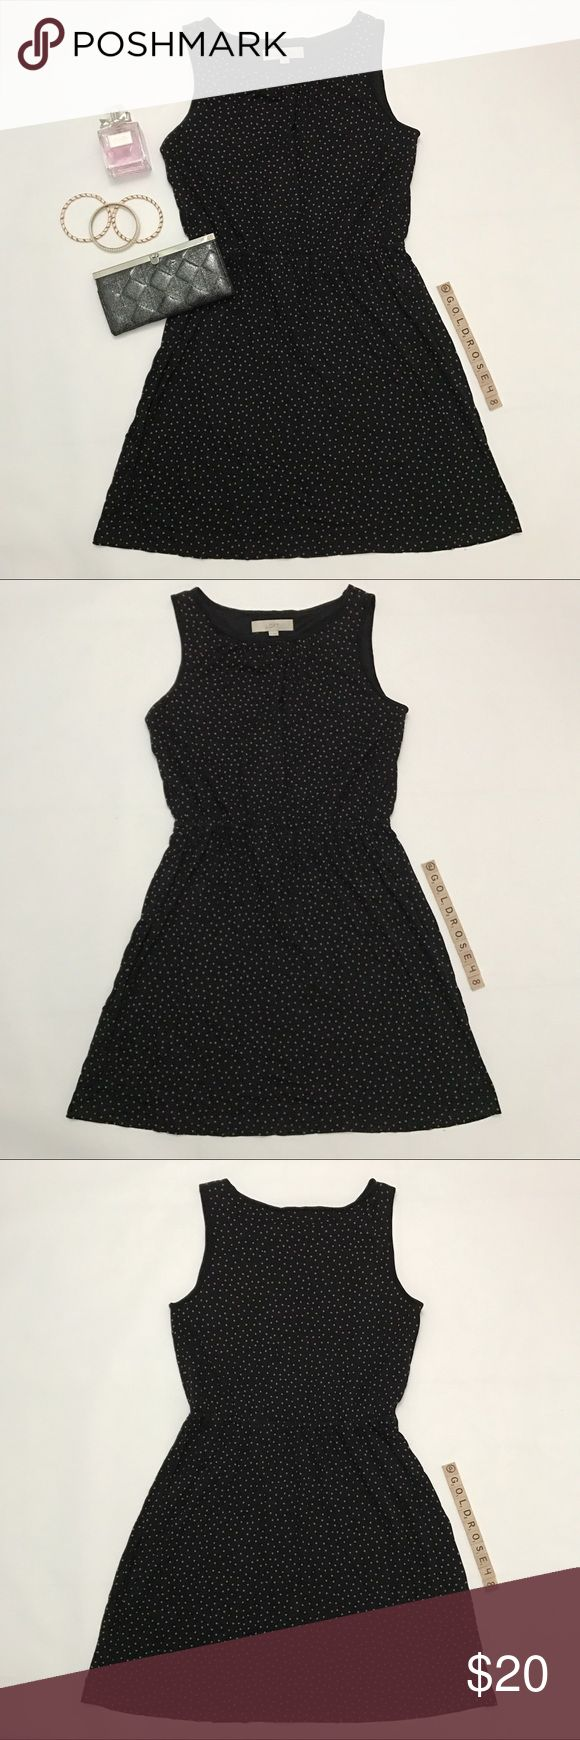 "Ann Taylor LOFT black polka dot dress Black dress with brownish polka dots, size M, overall length 33"", waist 13"" across unstretched, bust armpit to armpit 16"", inner lining only from the waist up. See pictures for material and washing instructions. Elastic waist. No zippers or pockets. Worn once so it's in excellent condition. No damage/fraying/stains. Has been cleaned and stored in a non-smoking/pet-free home. Purse, bracelets, perfume not included. No trades or offsite transactions. Make…"